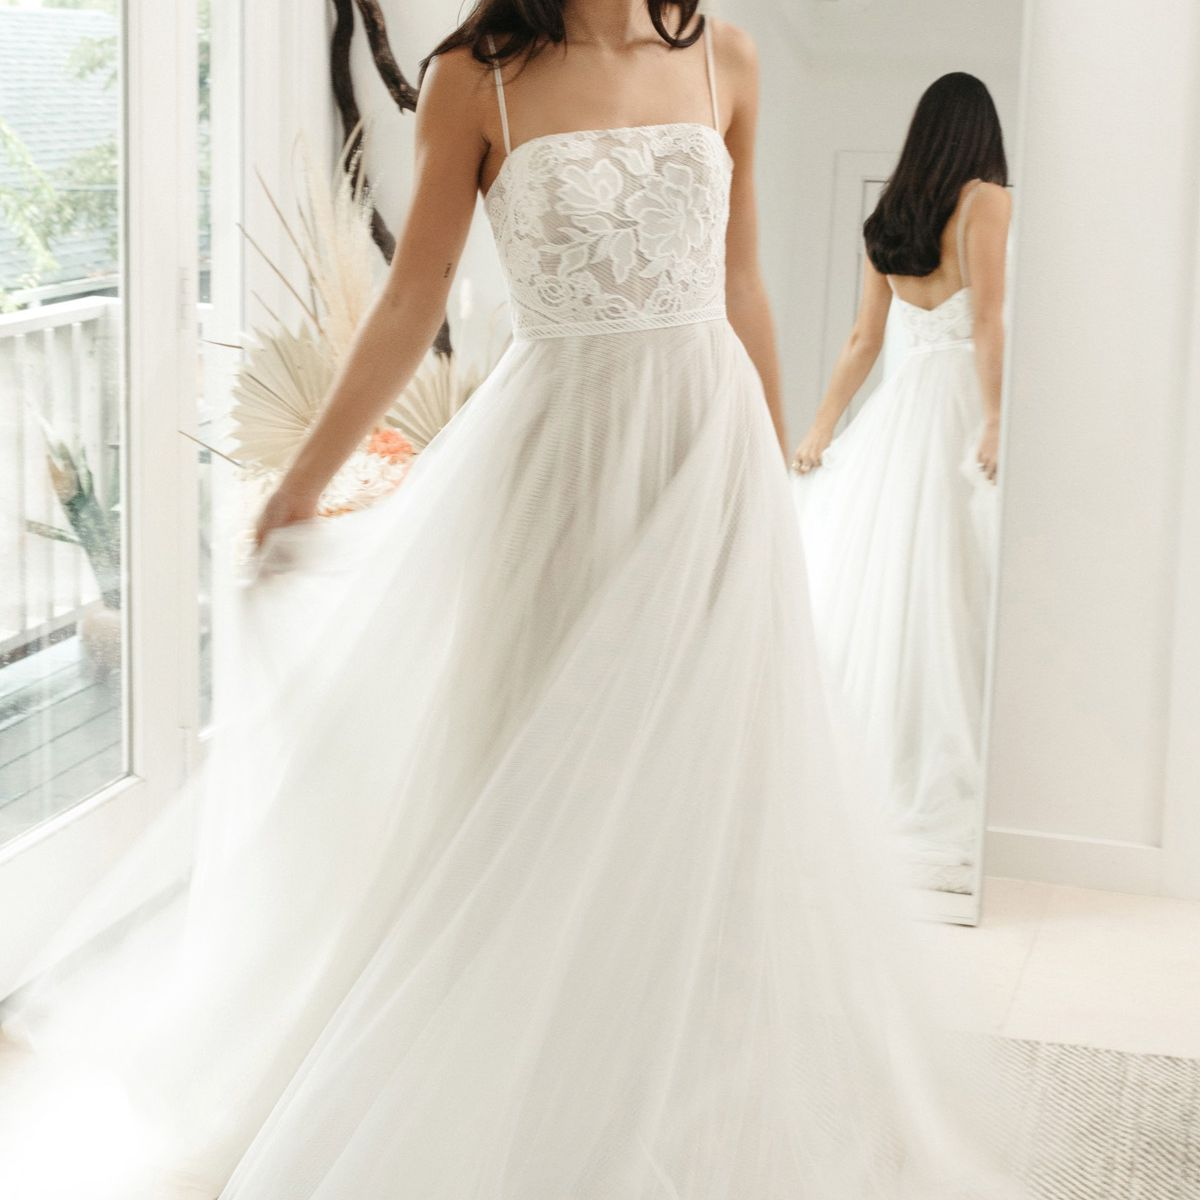 Model in a strapless A-line gown with a lace bodice and tulle skirt